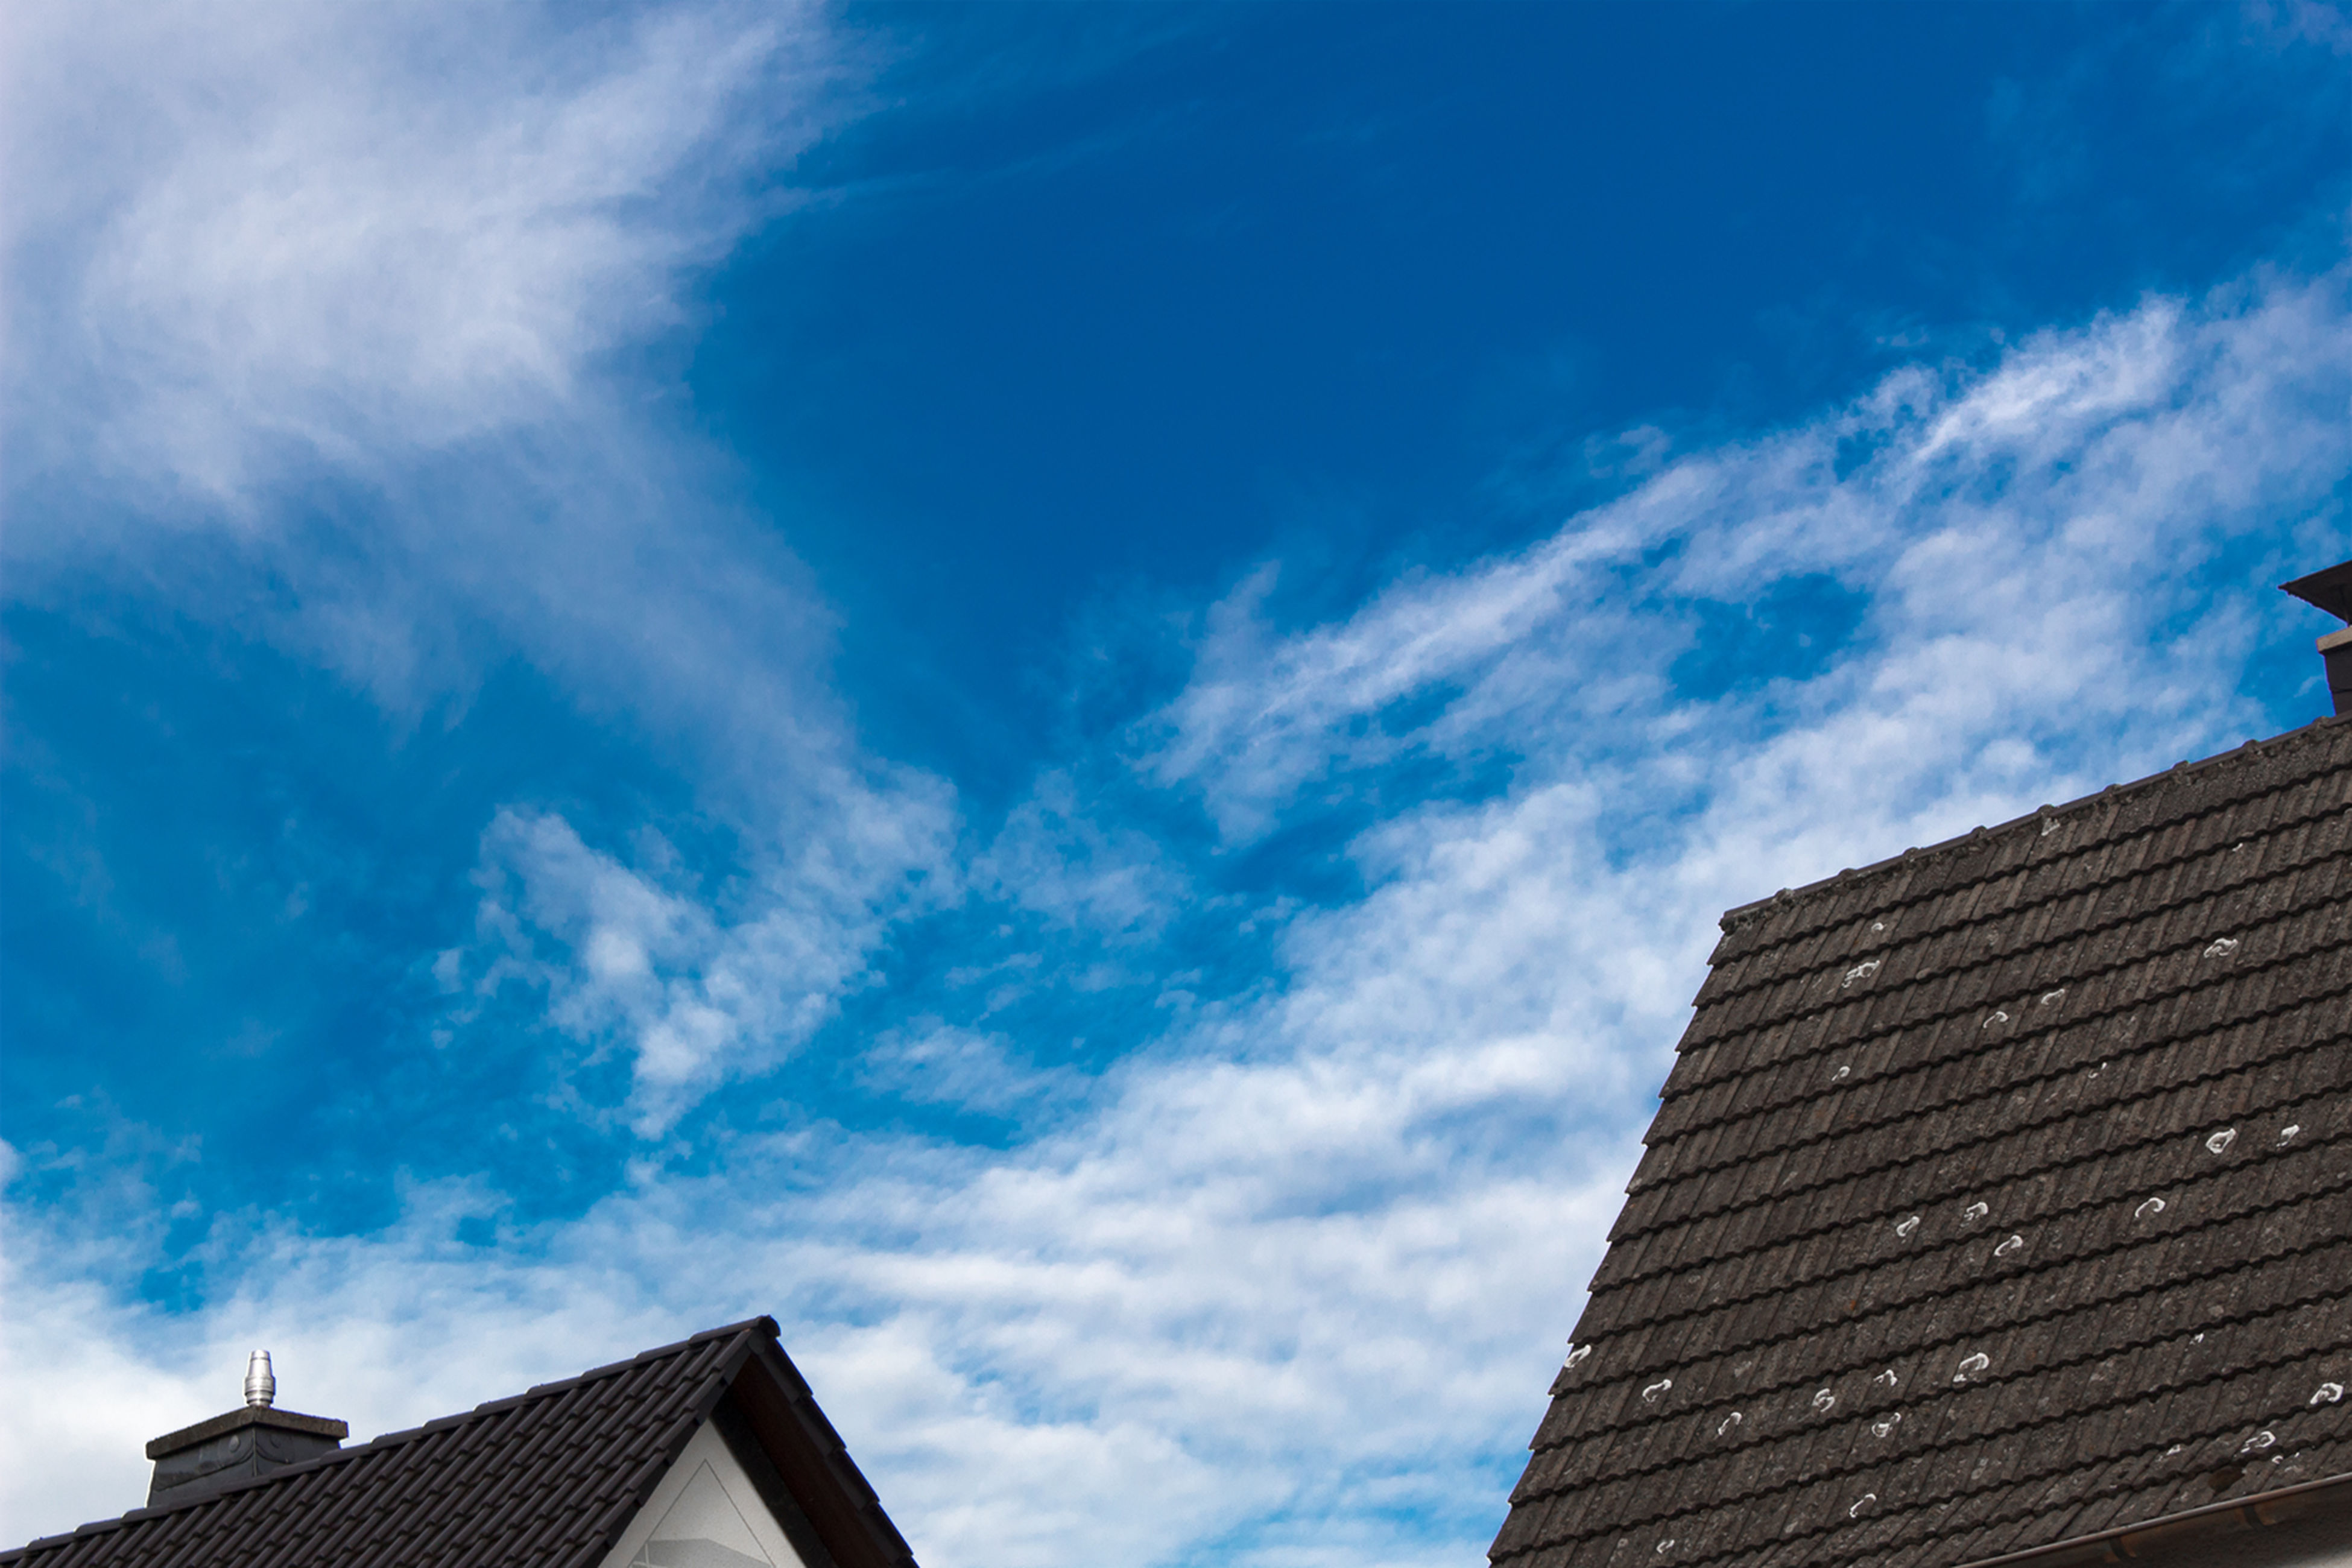 Architecture Built Structure Building Exterior Cloud - Sky Roof Sky Blue House Low Angle View Outdoors No People Day Foto Travel Reisen Deutschland Germany Schön Dramatic Sky Himmel Und Wolken Cloud Himmel Germany Skyline